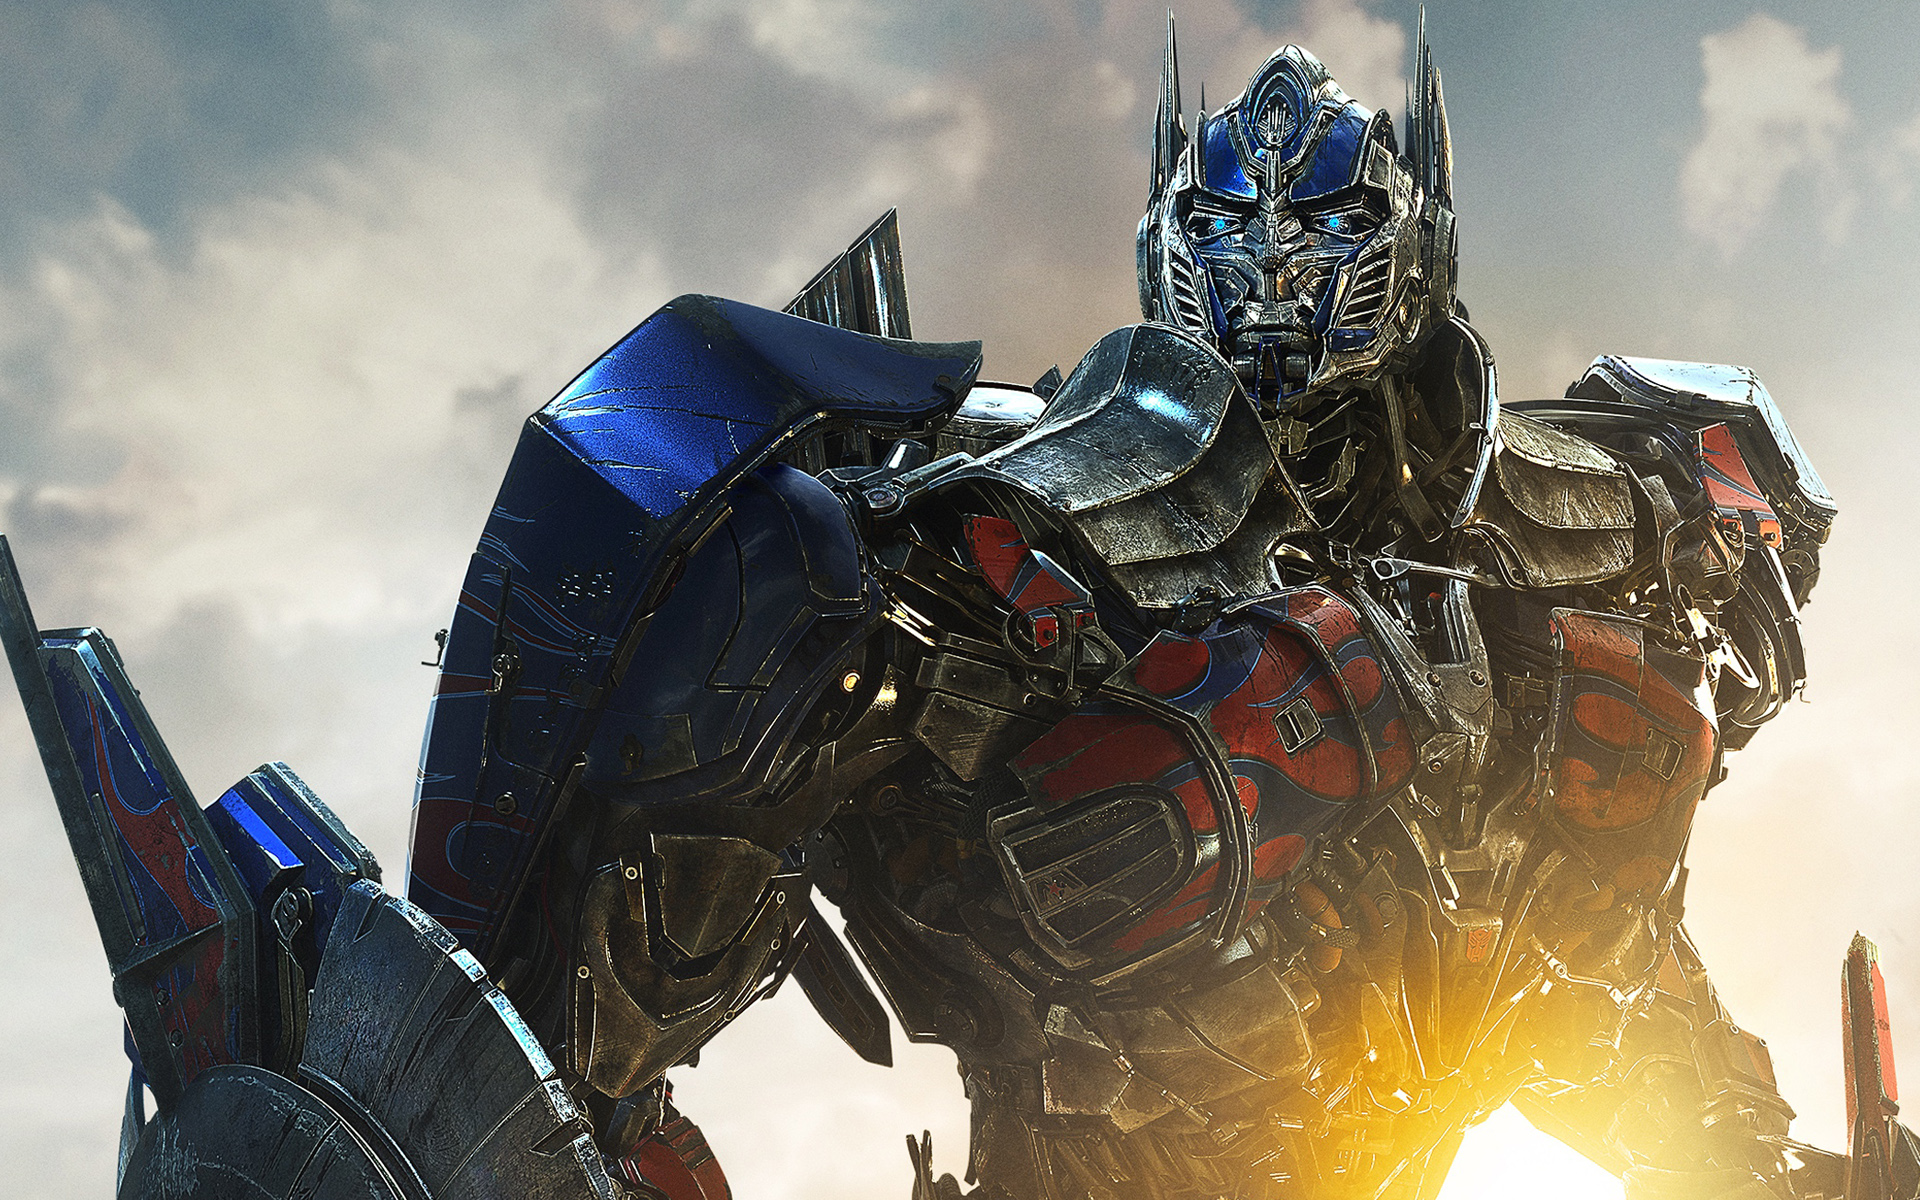 Transformers Age of Extinction Optimus Prime 1322.32 Kb